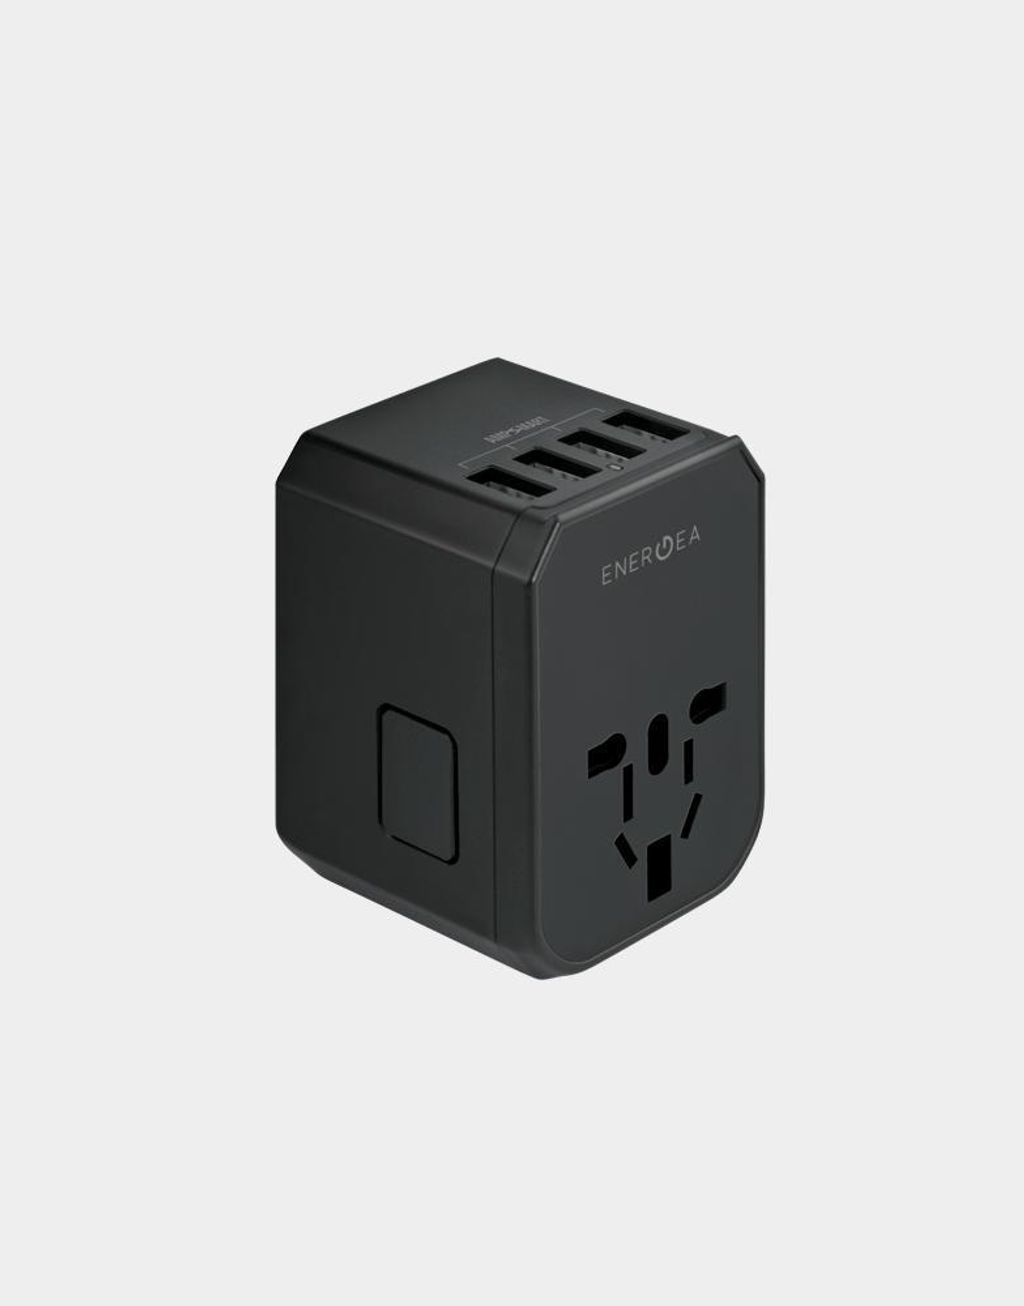 Travelworld_Adapter_USB_charger_2_8b7a391f-0415-440b-8bb7-ae4377a989e9_1024x1024.jpg